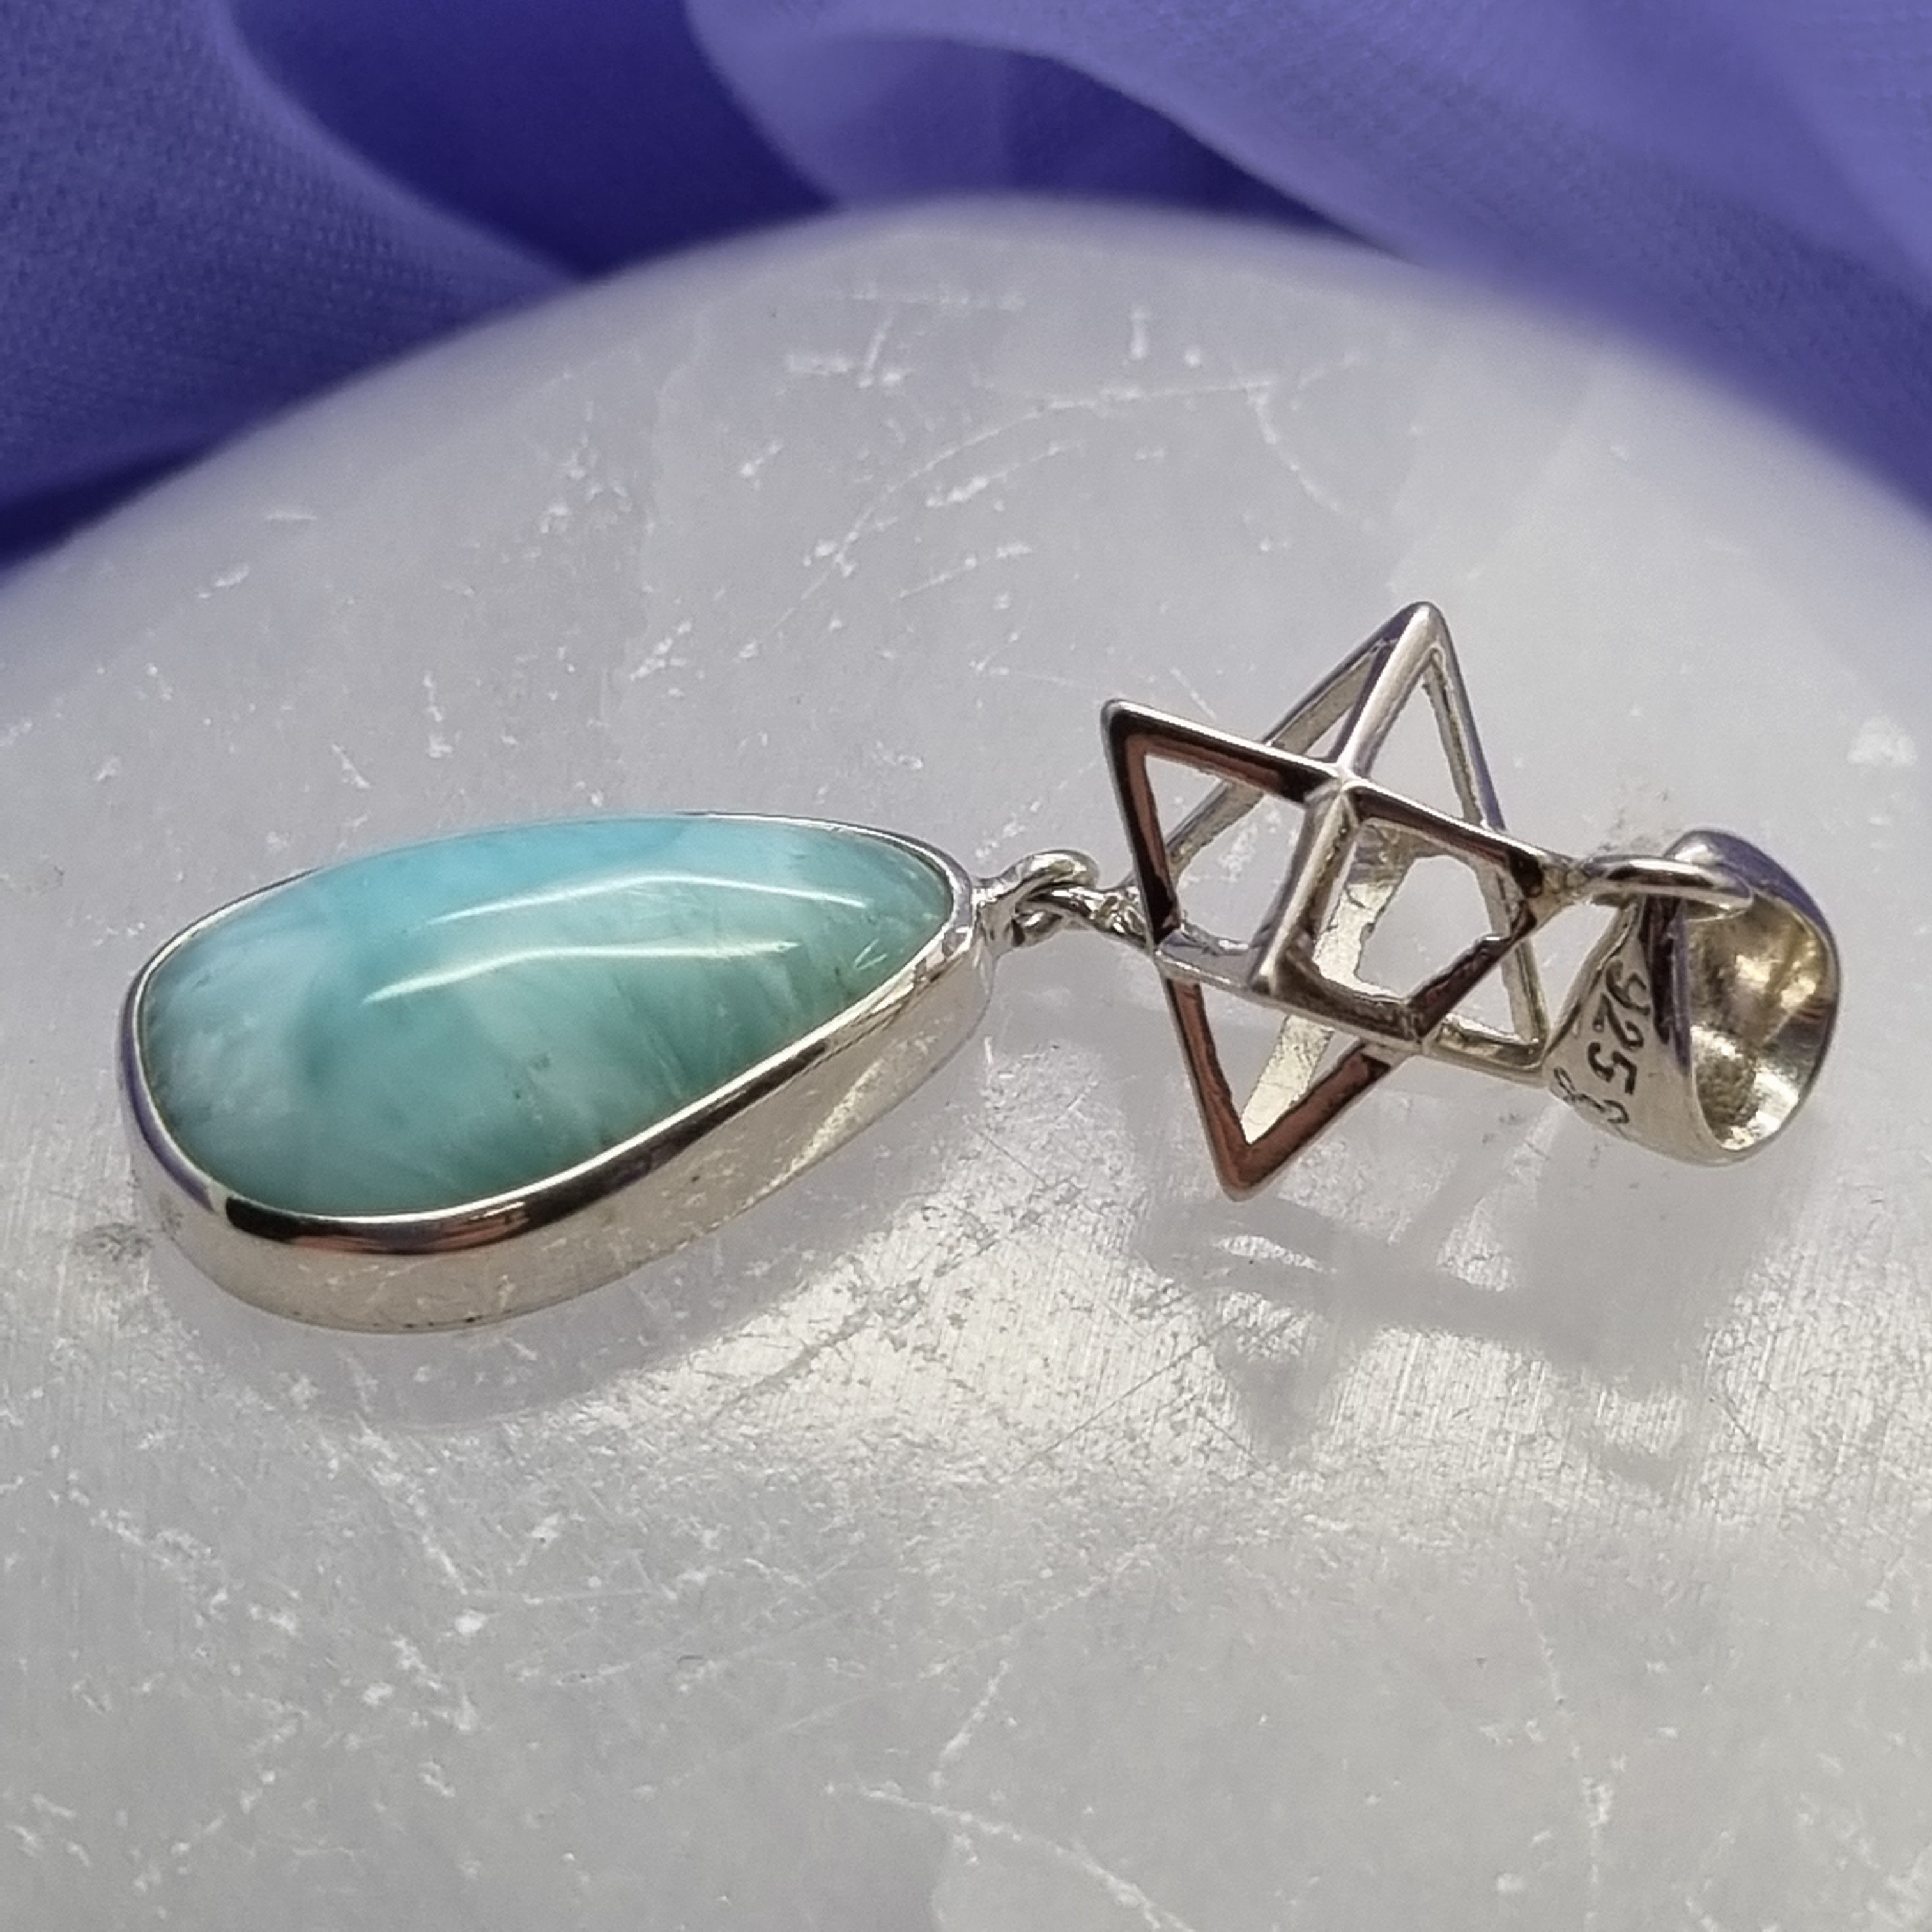 Pendant Larimar With Merkabah | Carpe Diem With Remi